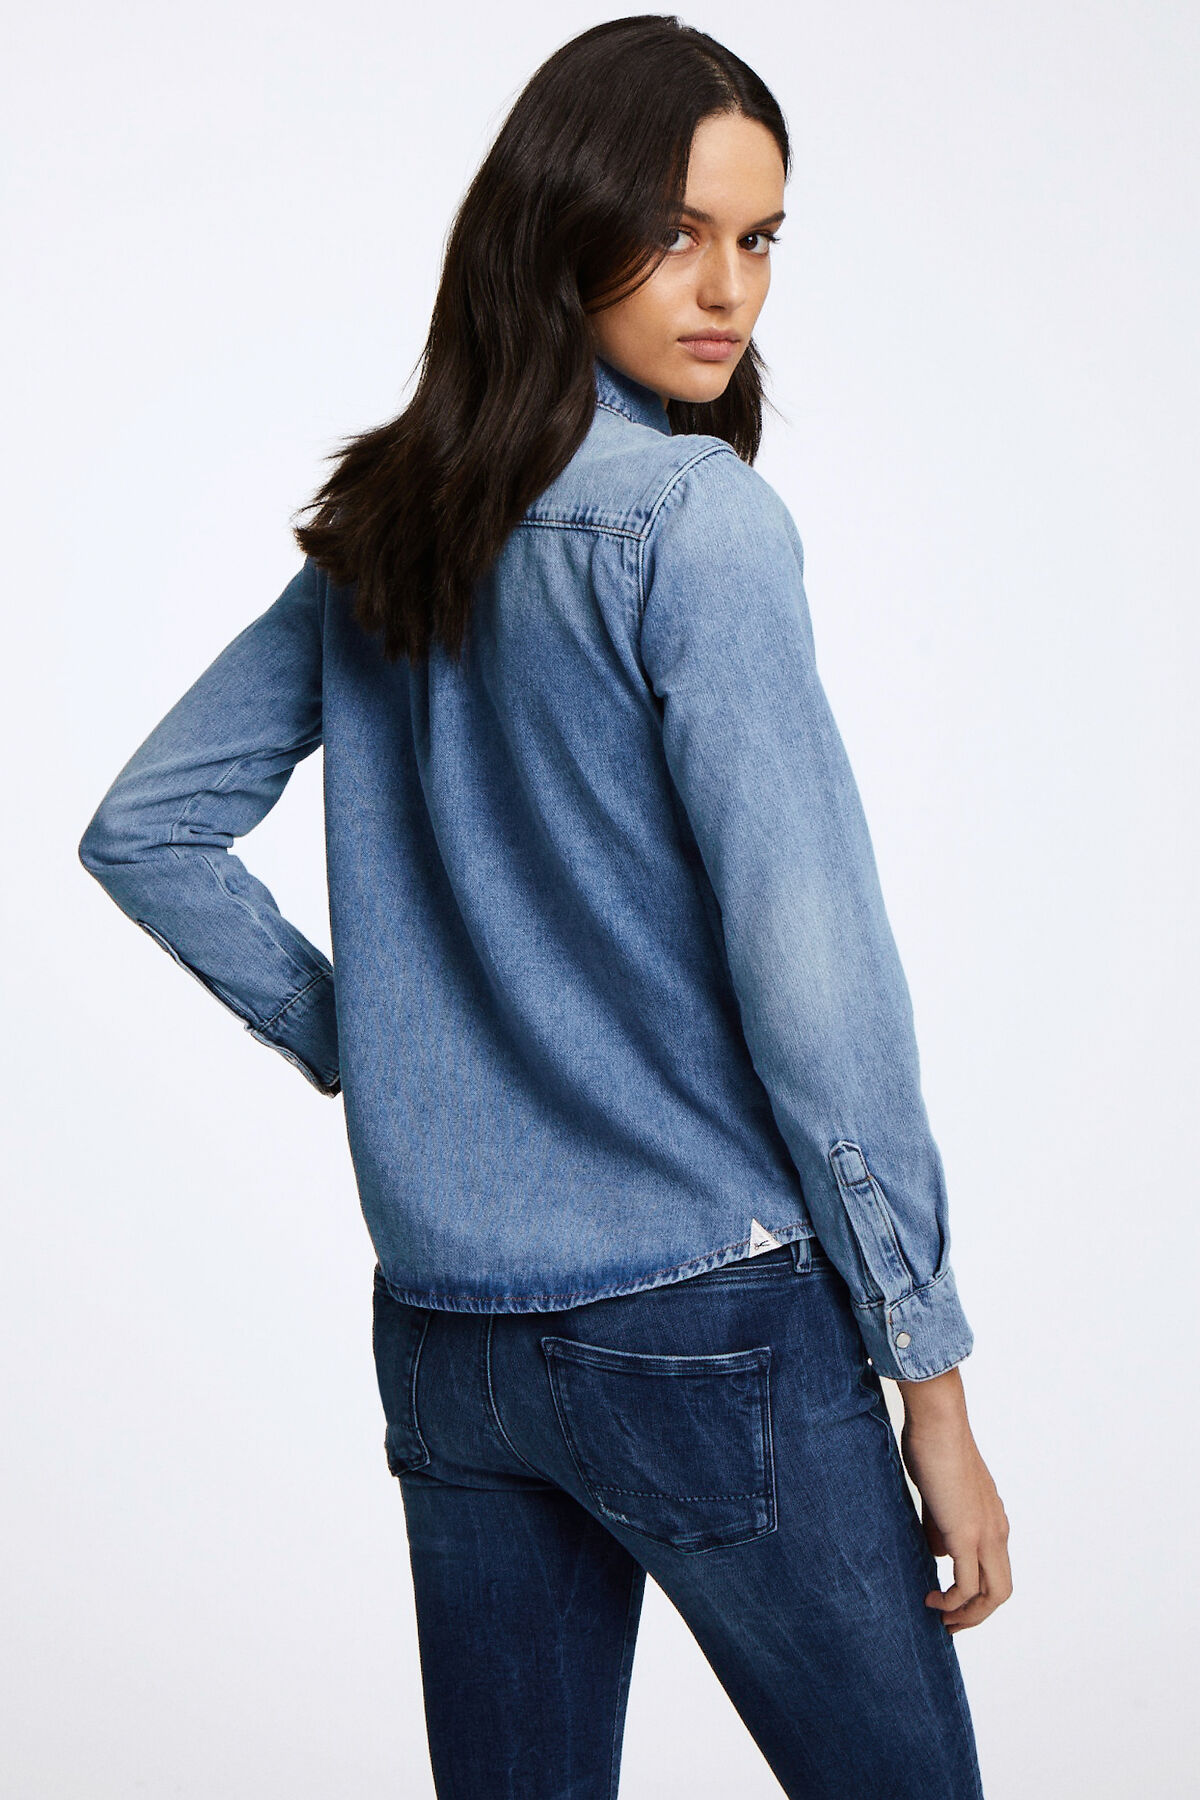 JESSIE SHIRT Soft Touch Denim - Regular Fit